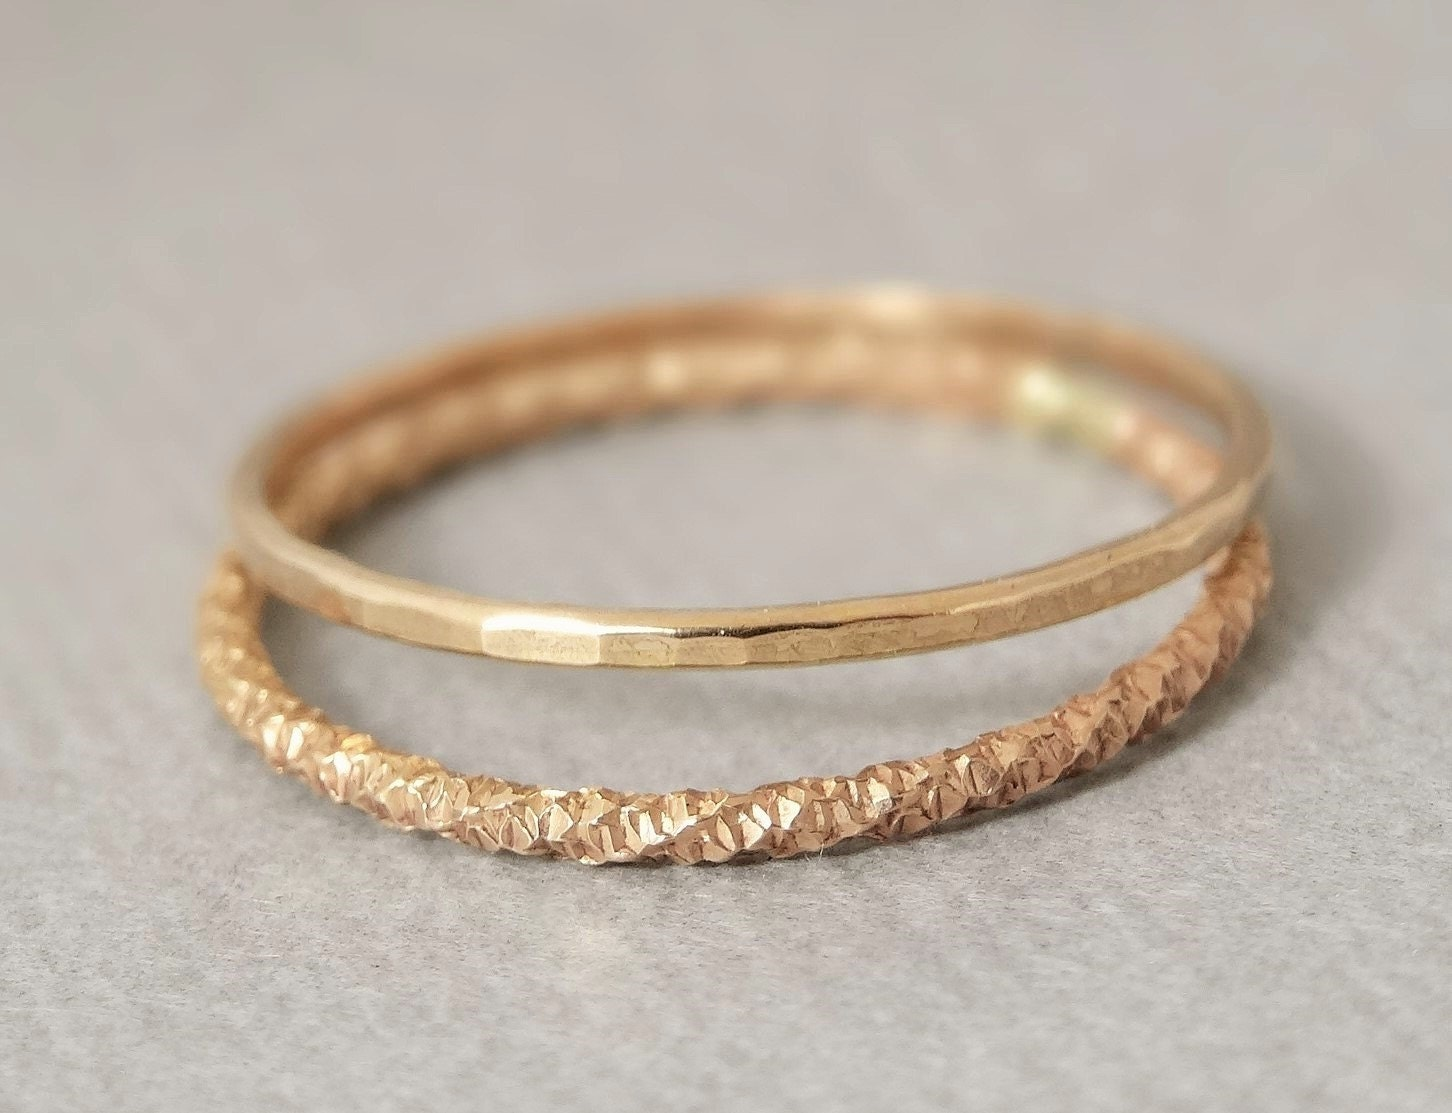 Gold Thumb Ring X2 Delicate Thin Gold Filled Thumb Ring Super